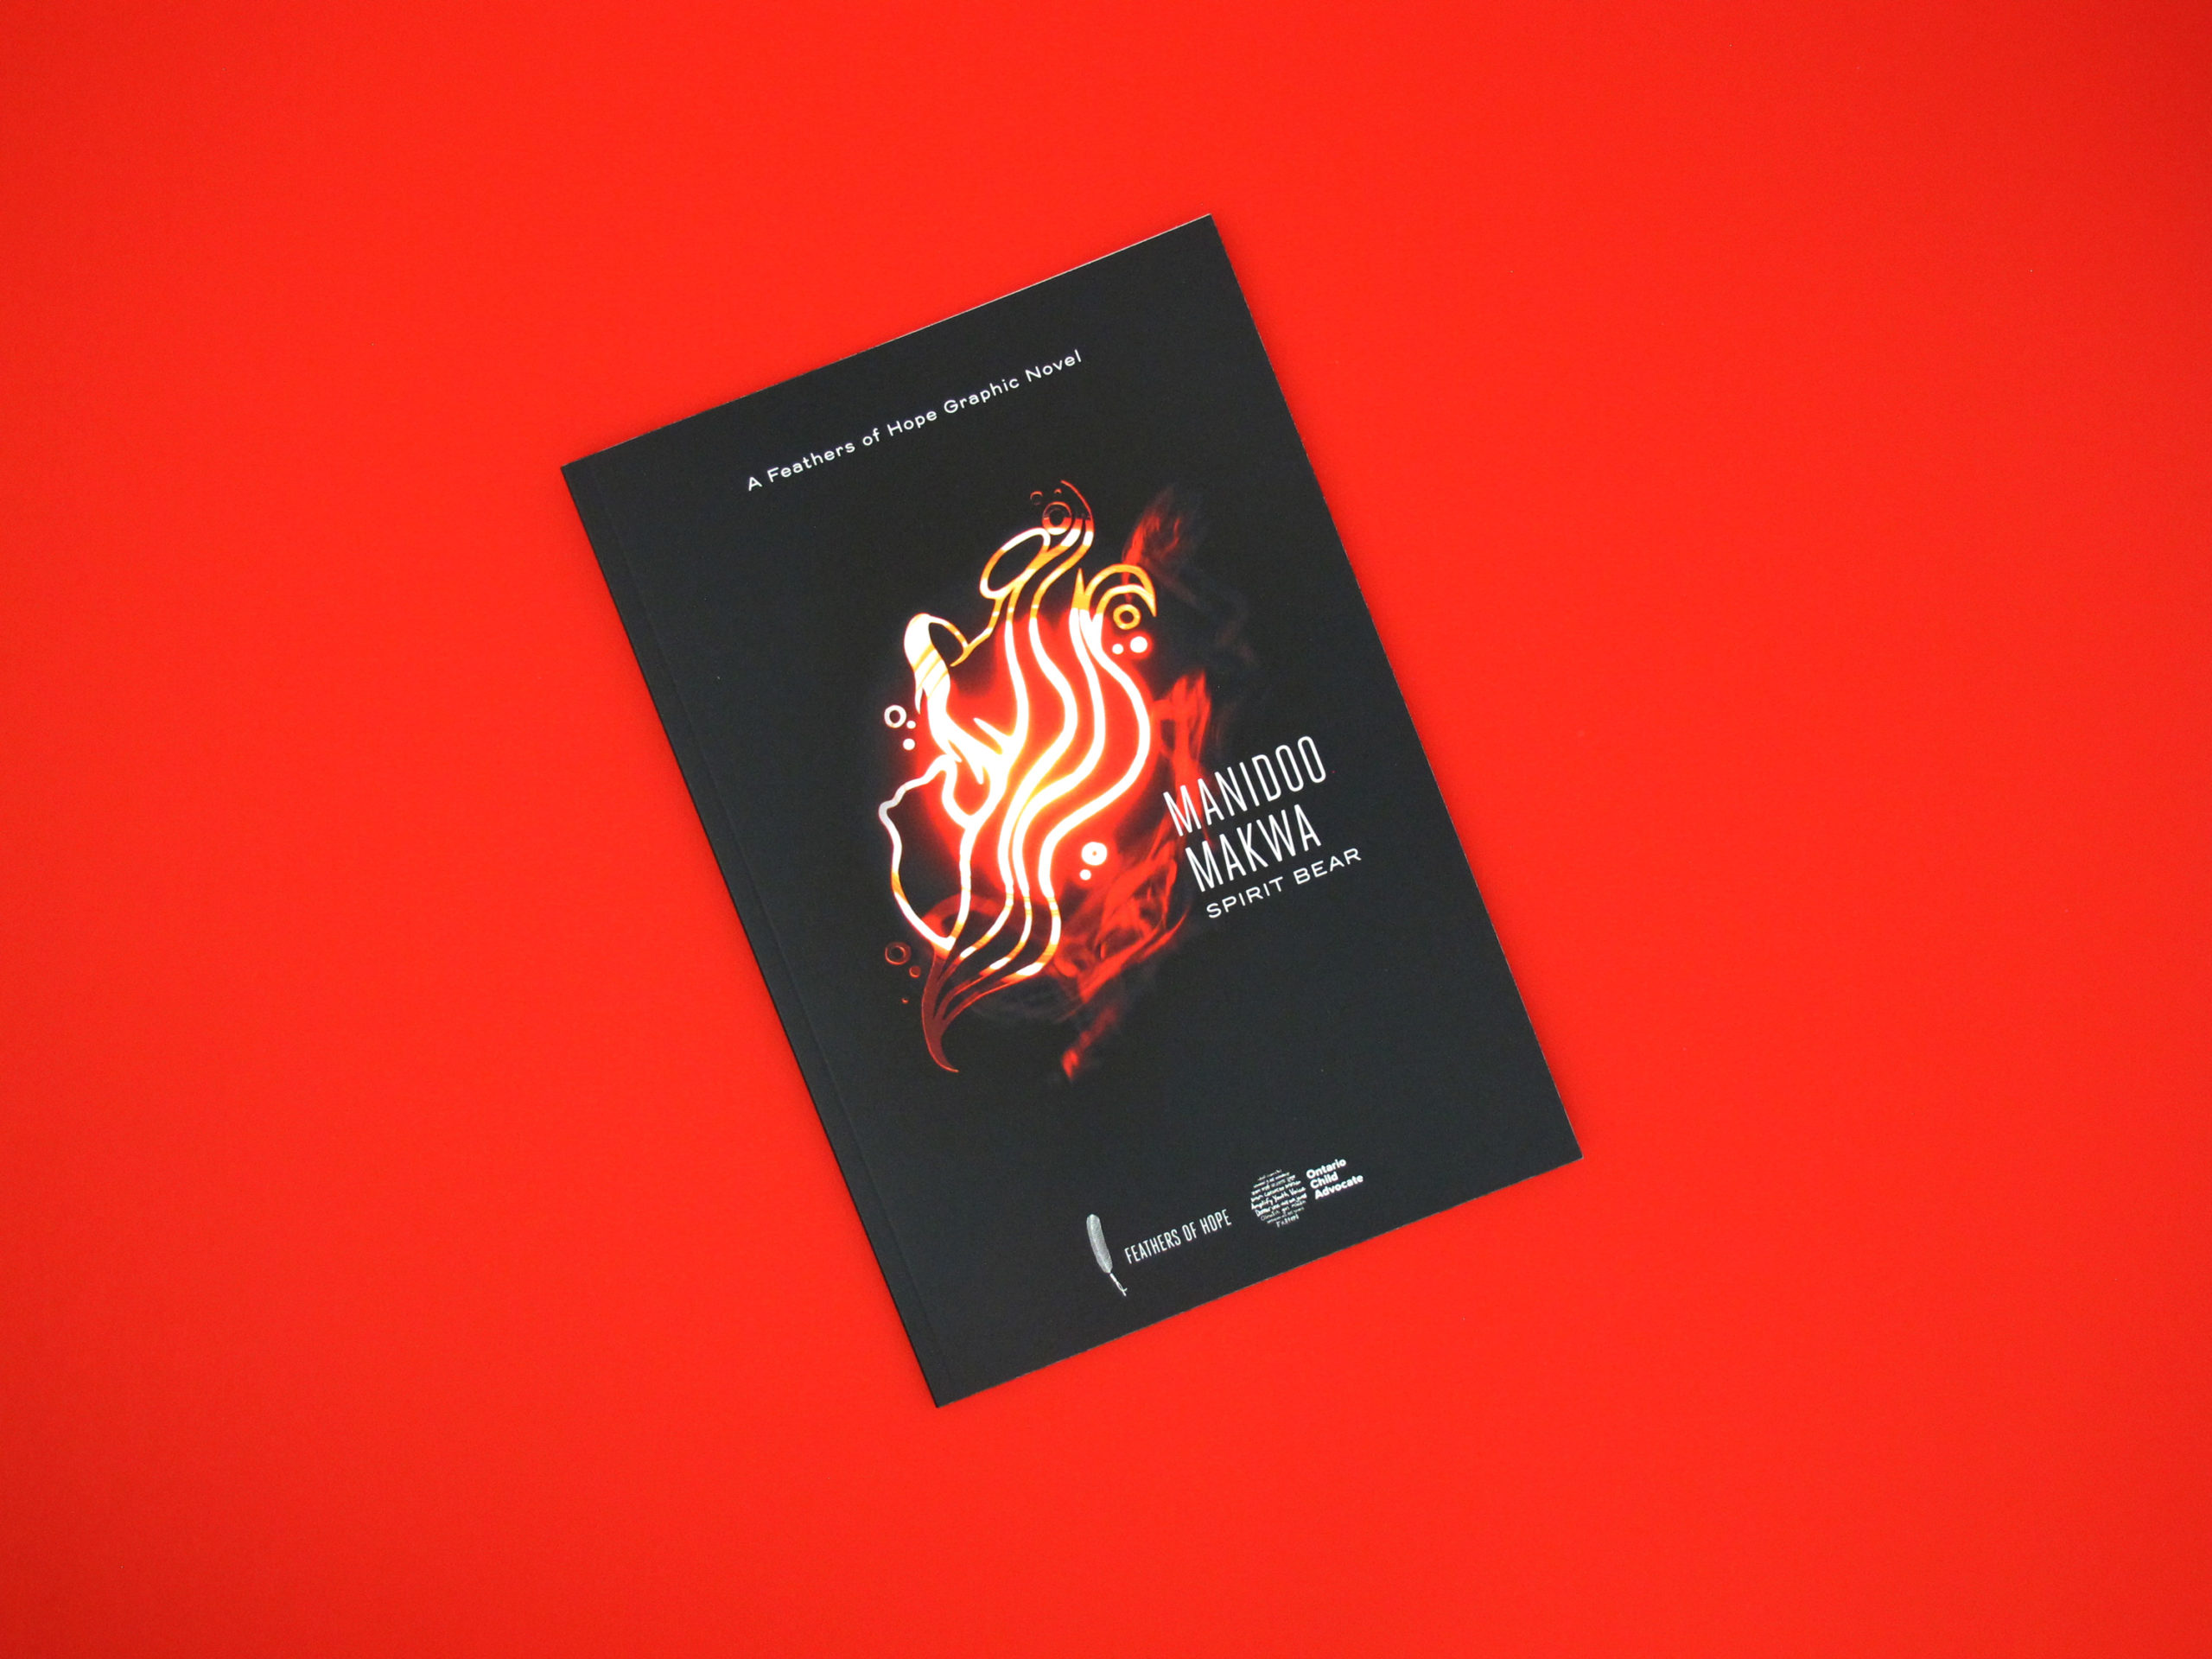 Photo shows the front cover of the graphic novel Manidoo Makwa: Spirit Bear. It is a black cover with a glowing, red illustration in the center. The illustration shows an undulating path moving upwards. On the path we can distinguish a bear standing behind the silhouette of a young person holding a drum. They seem to be flowing along with the path, as if they were one with it.